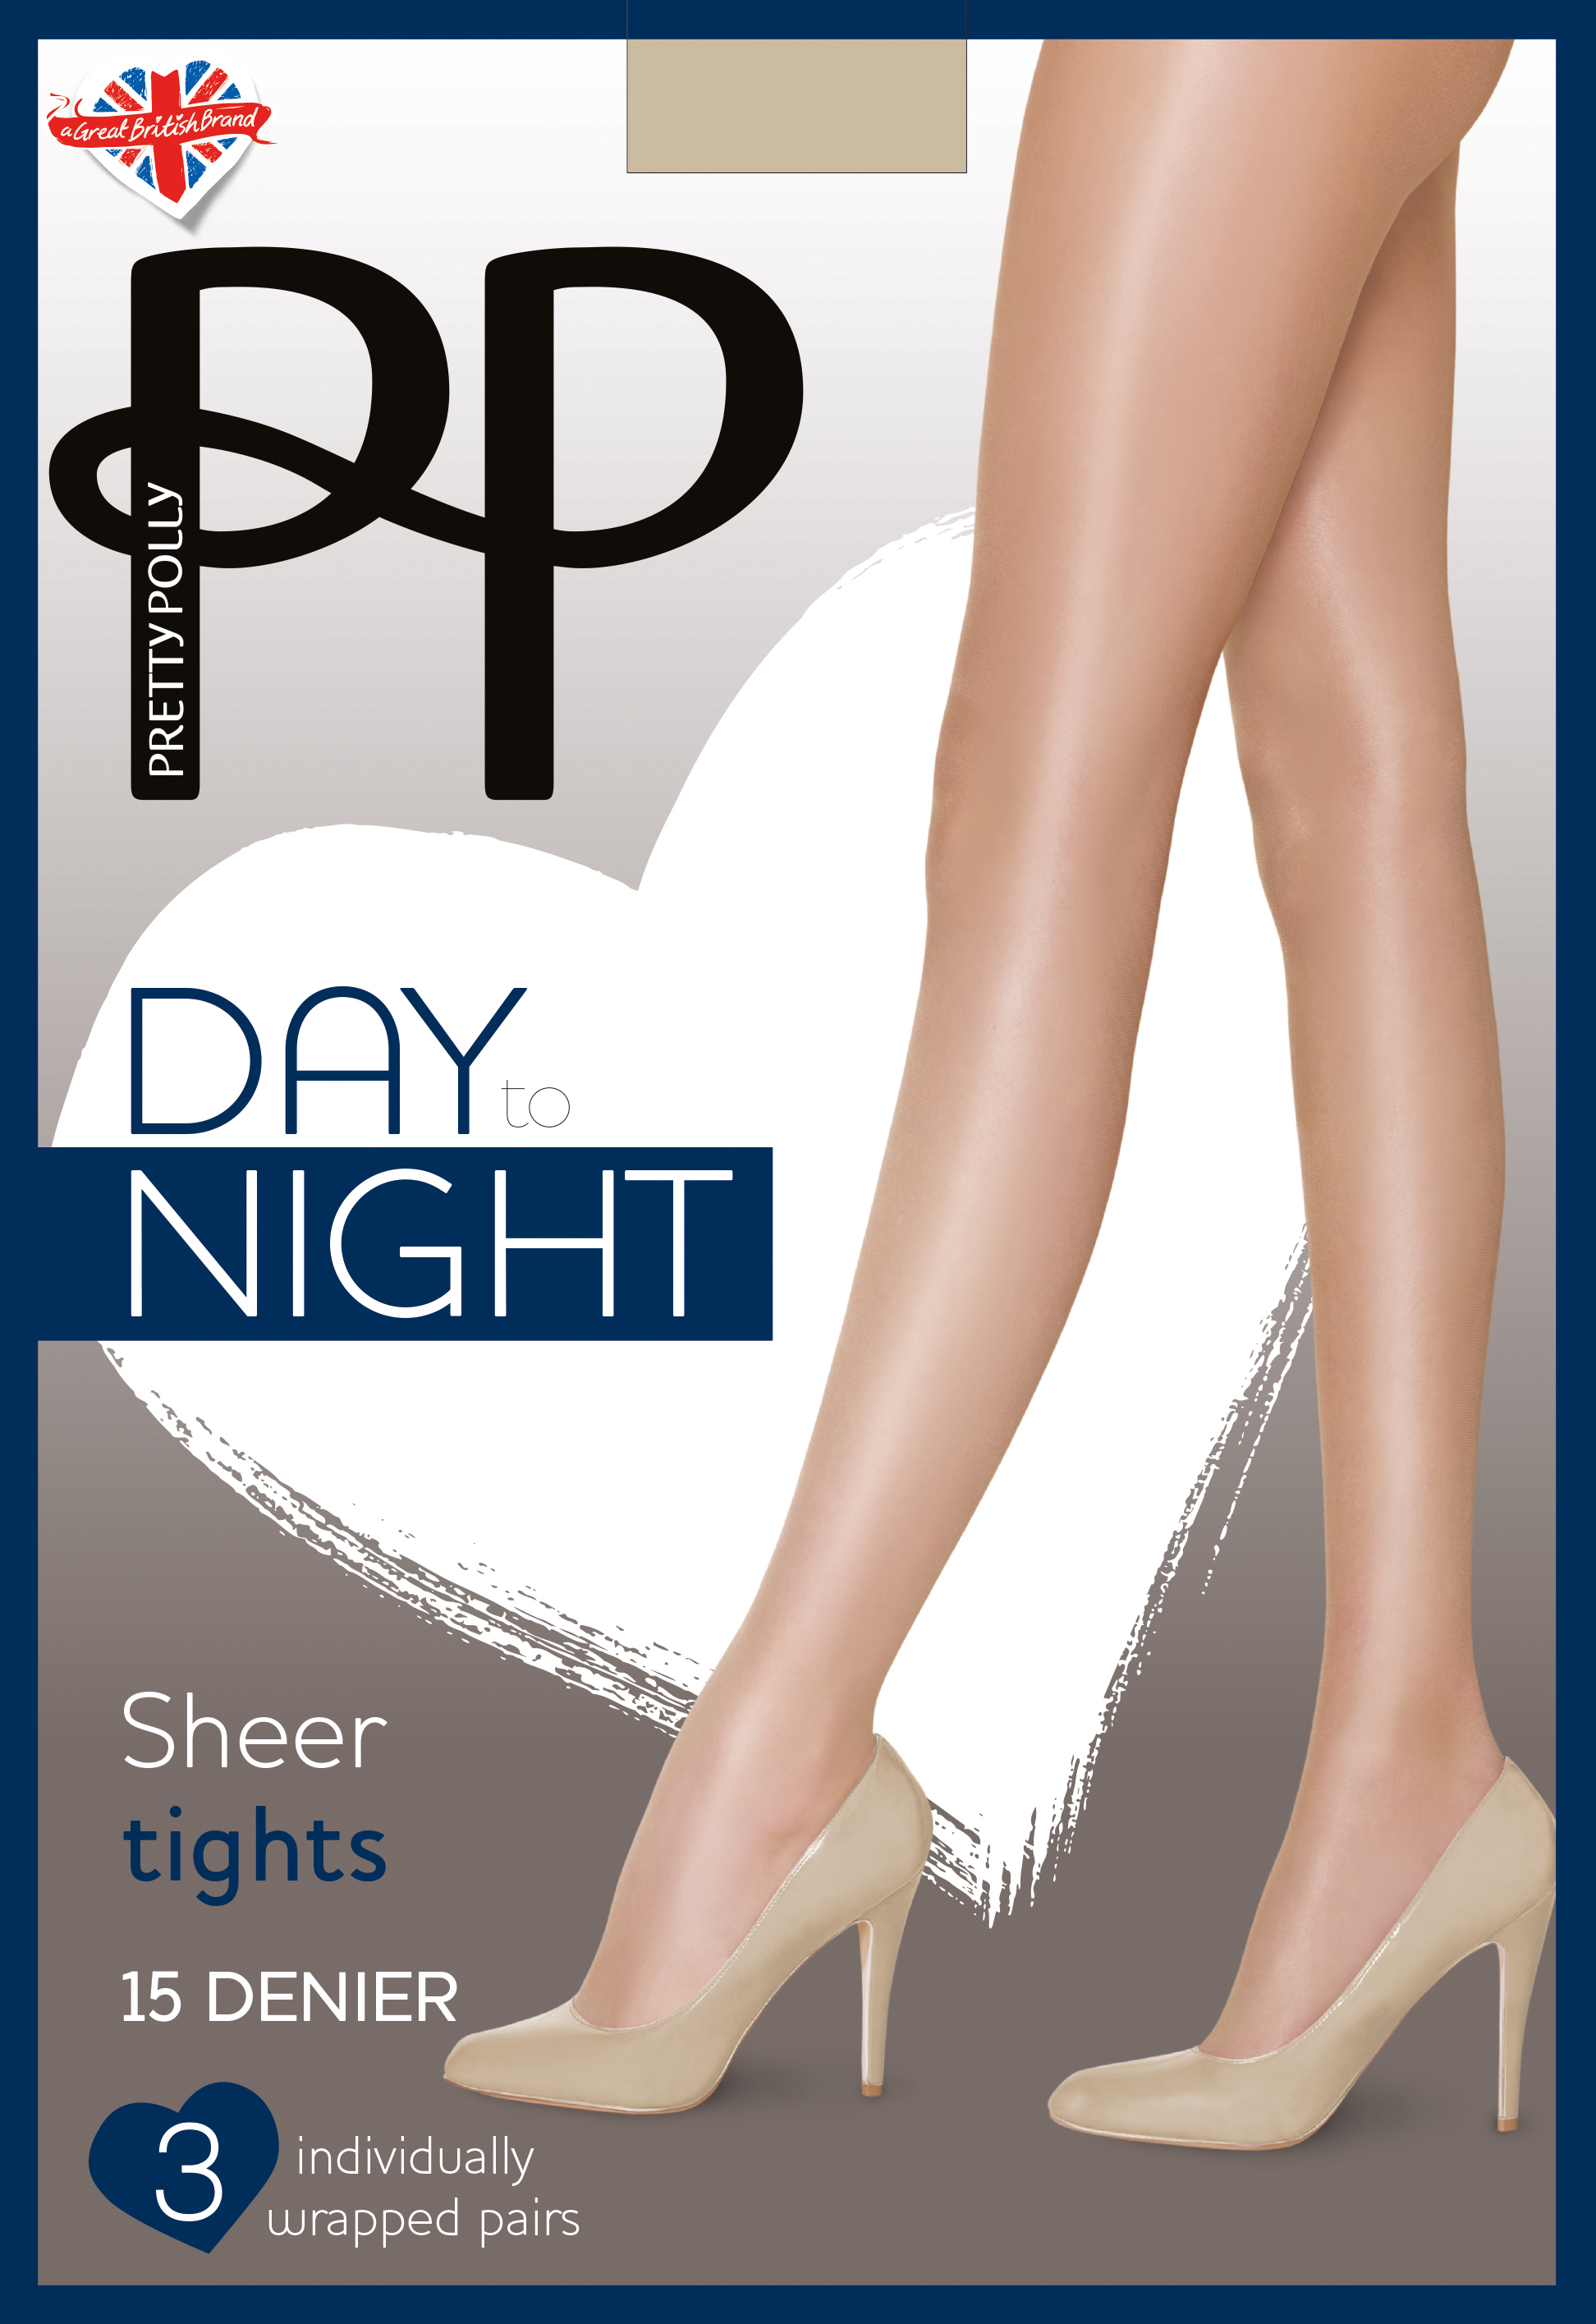 Pretty Polly Day to Night - 15 denier sheer tights - 3 pairs